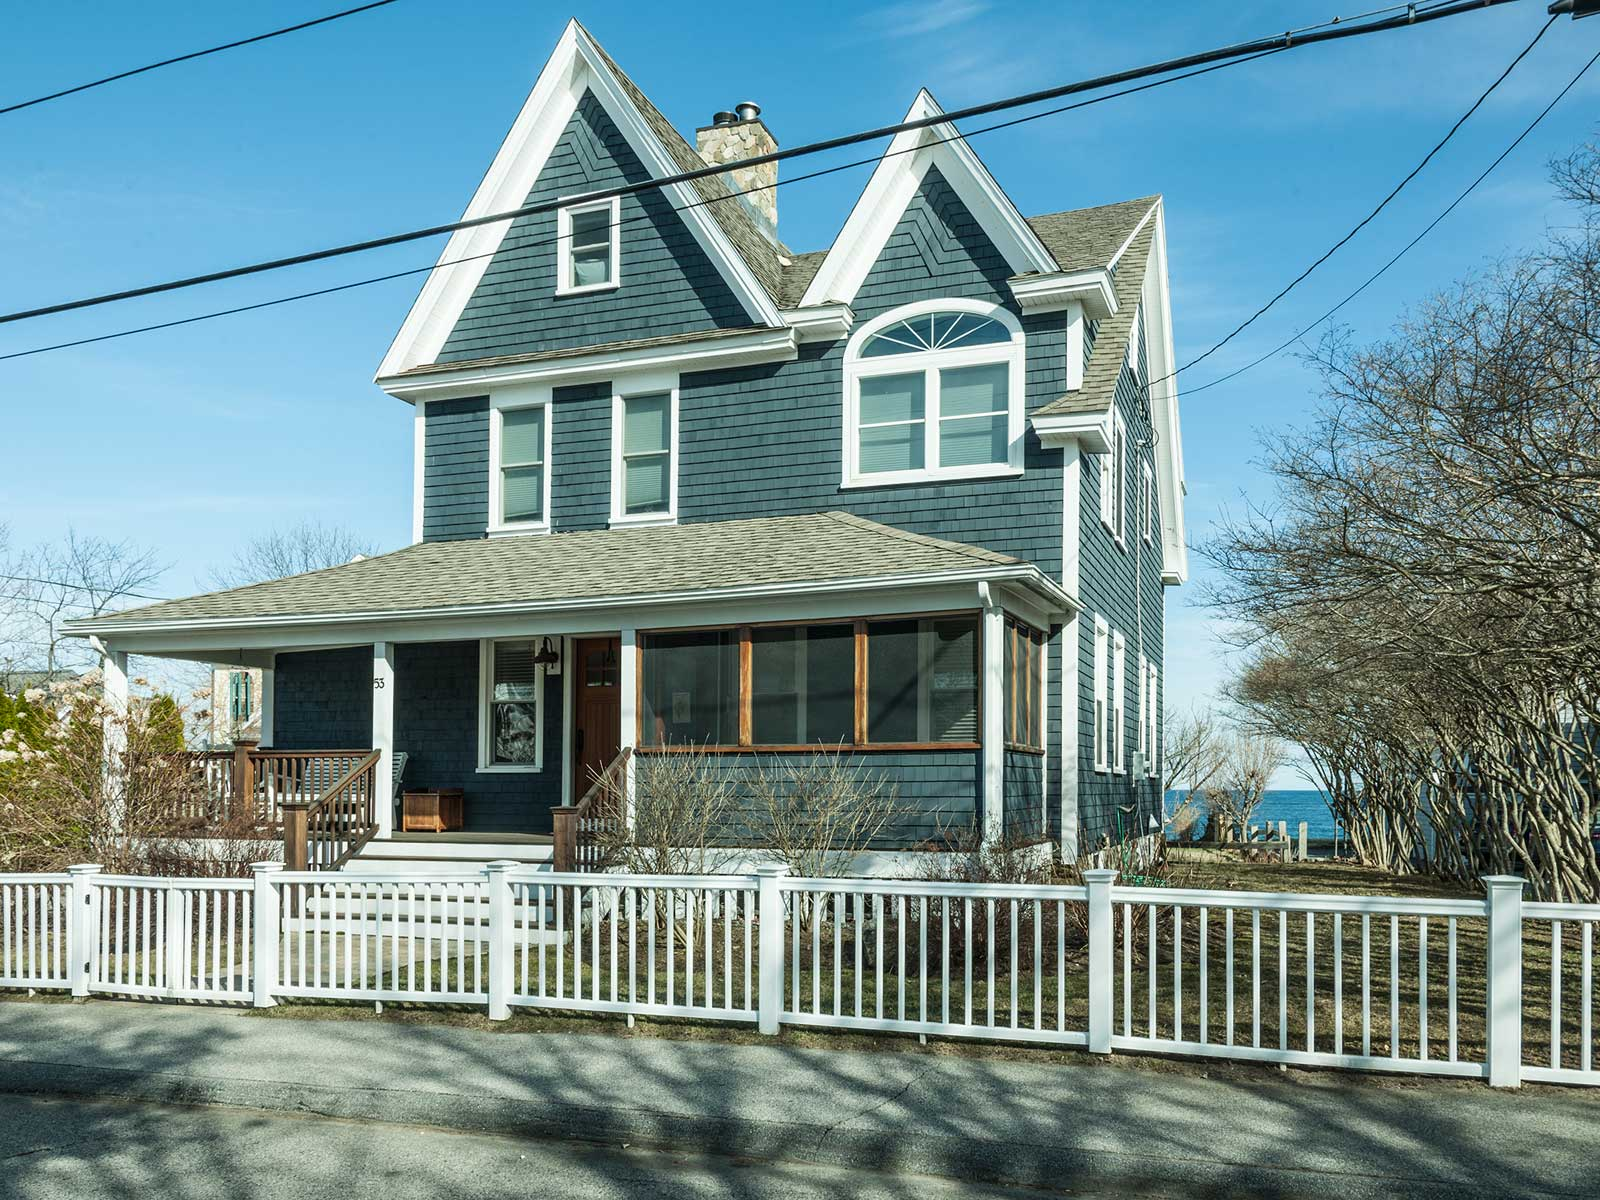 Single Family Home for Sale at Ocean View Victorian in York 53 Freeman Street York, Maine 03909 United States